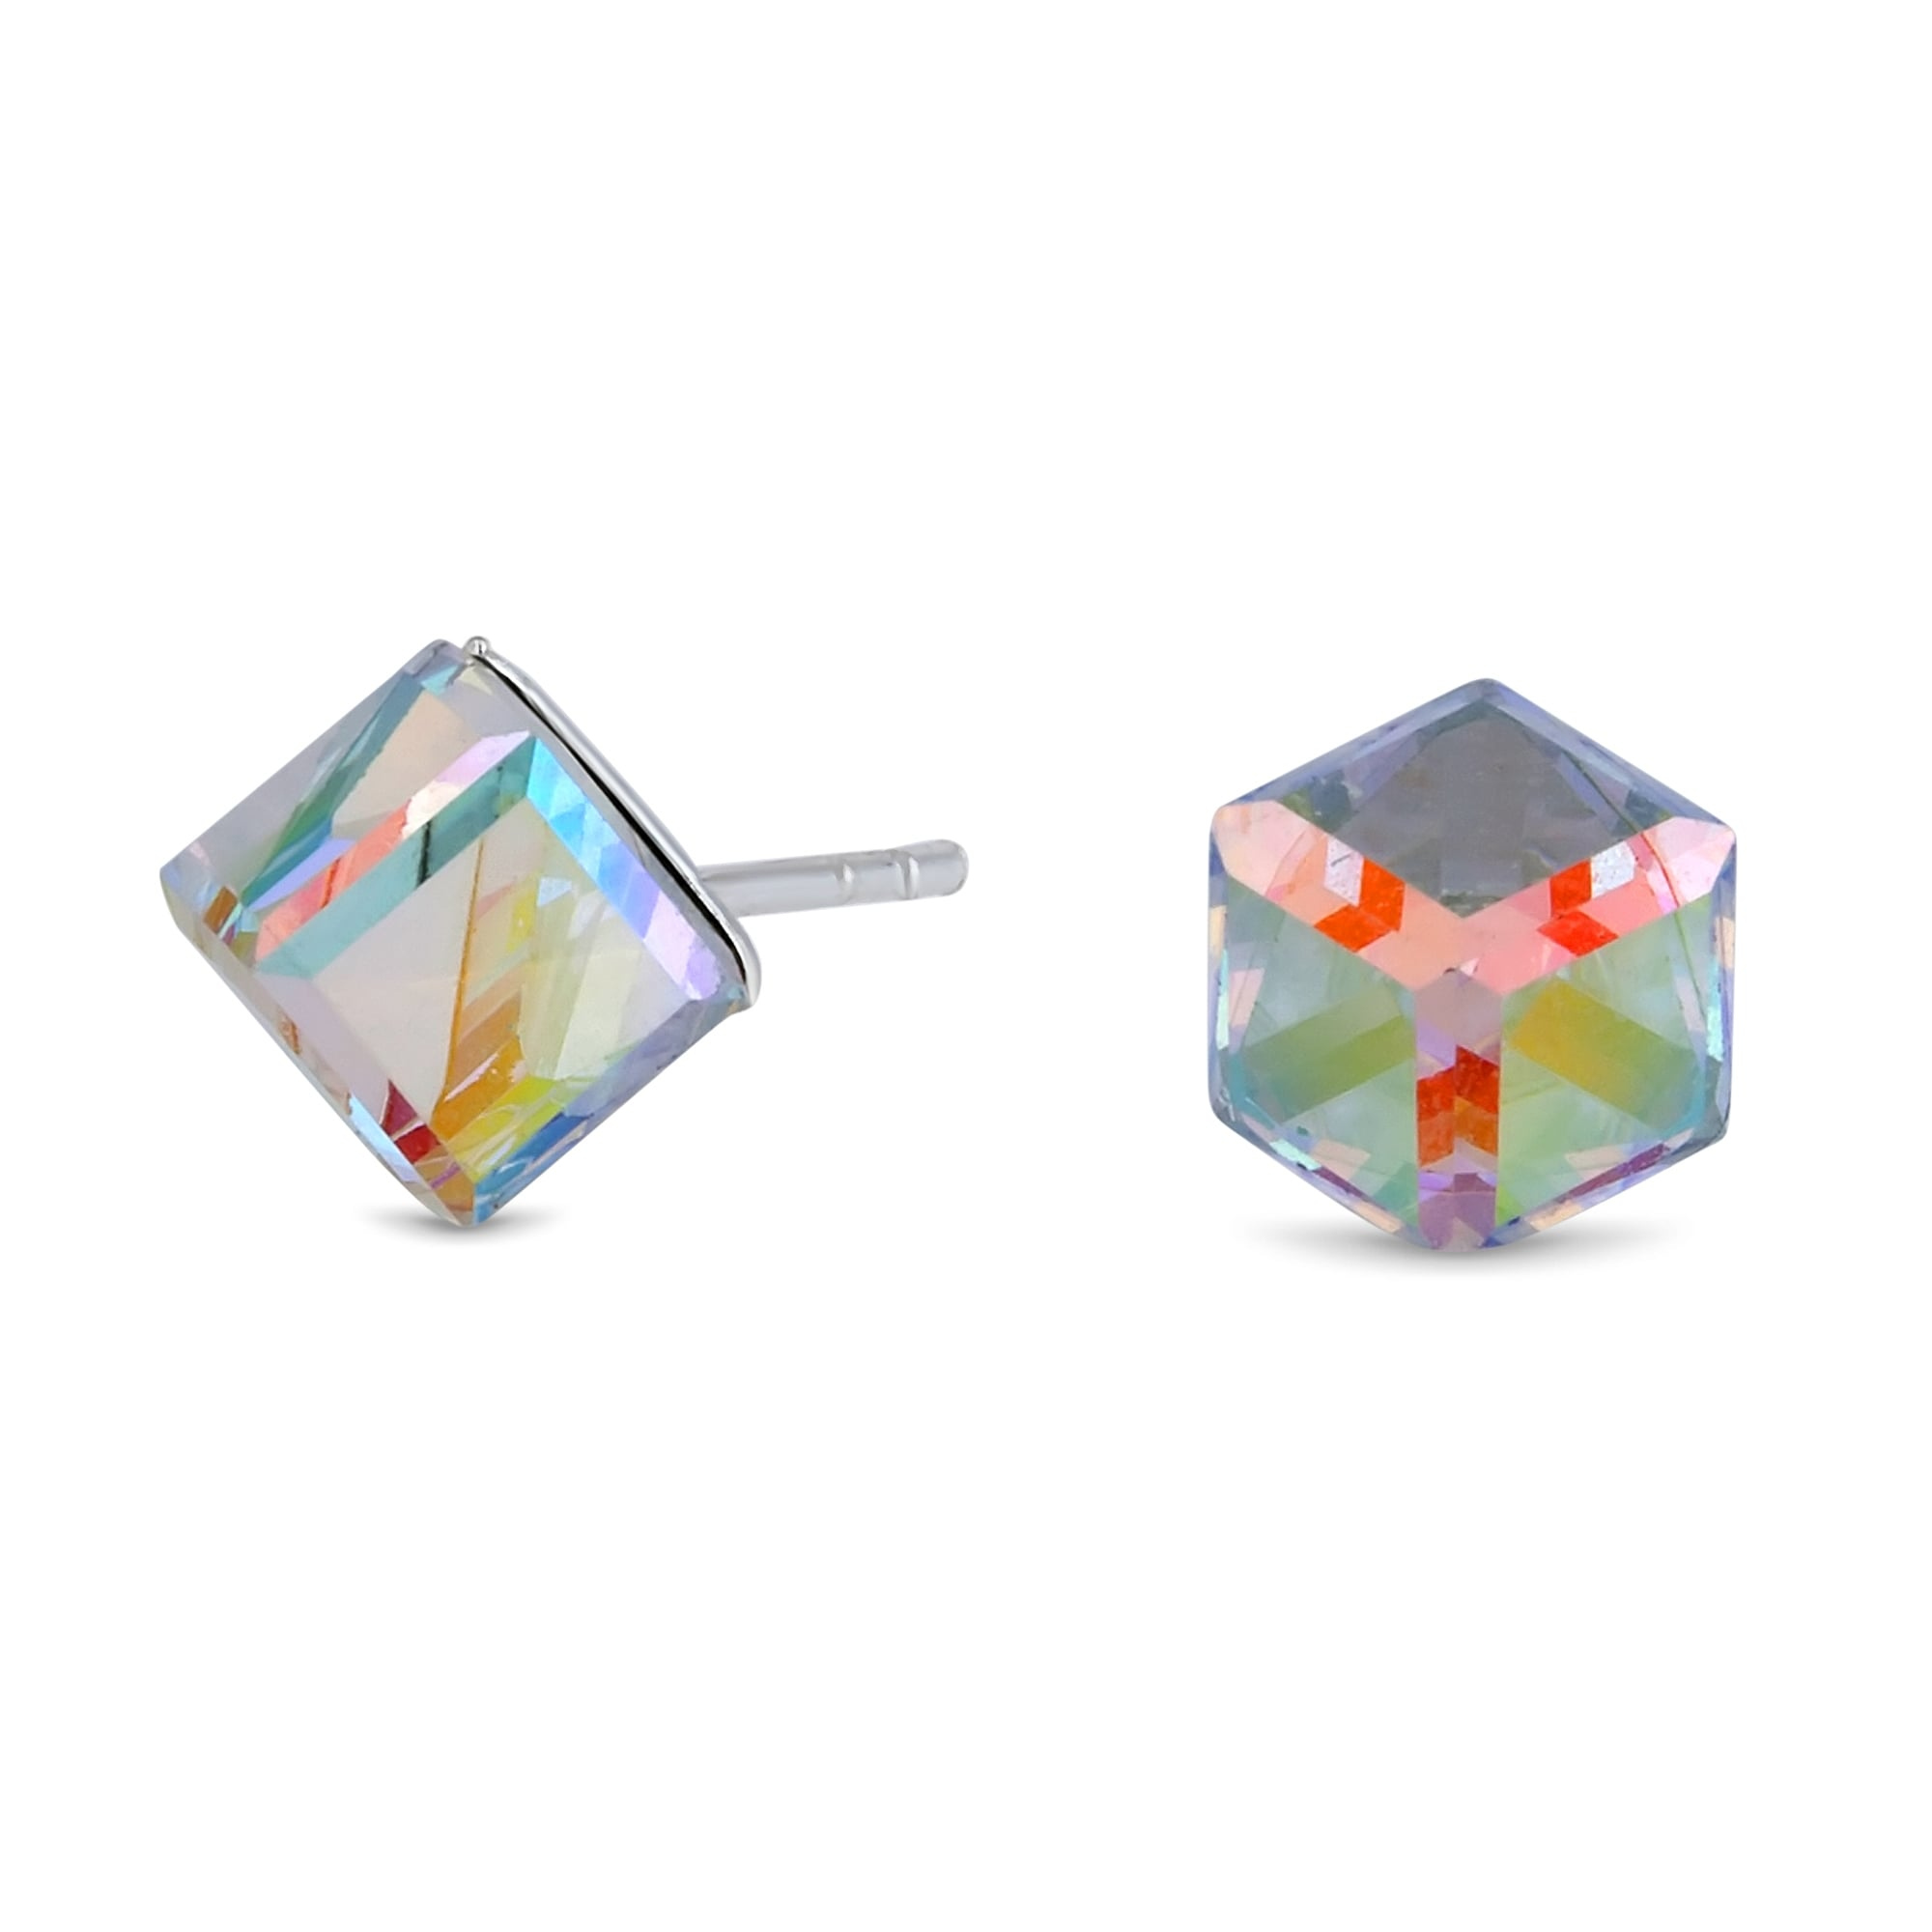 bd95ed6ba Simply Silver Sterling Silver 925 Multi Coloured Cube Stud Earring  Embellished With Swarovski® Crystals